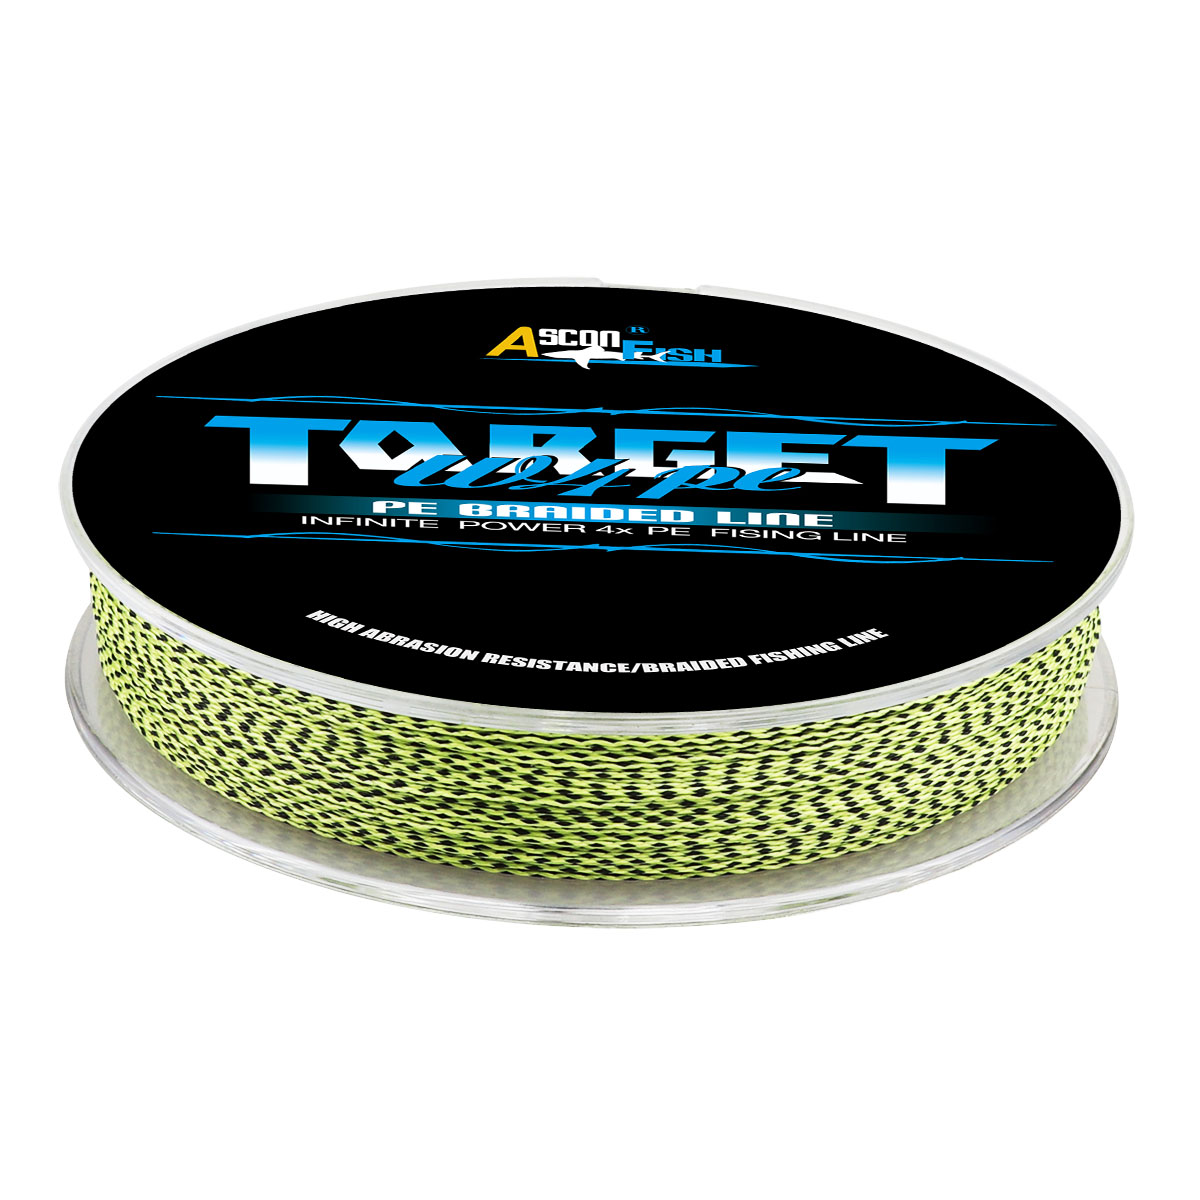 100M 300M PE Fishing Line 4 Strands Braided Fishing Line 2 4 6 8 10 20  60 80 100LBS Multifilament Fishing spot Line 0.06-0.55mm